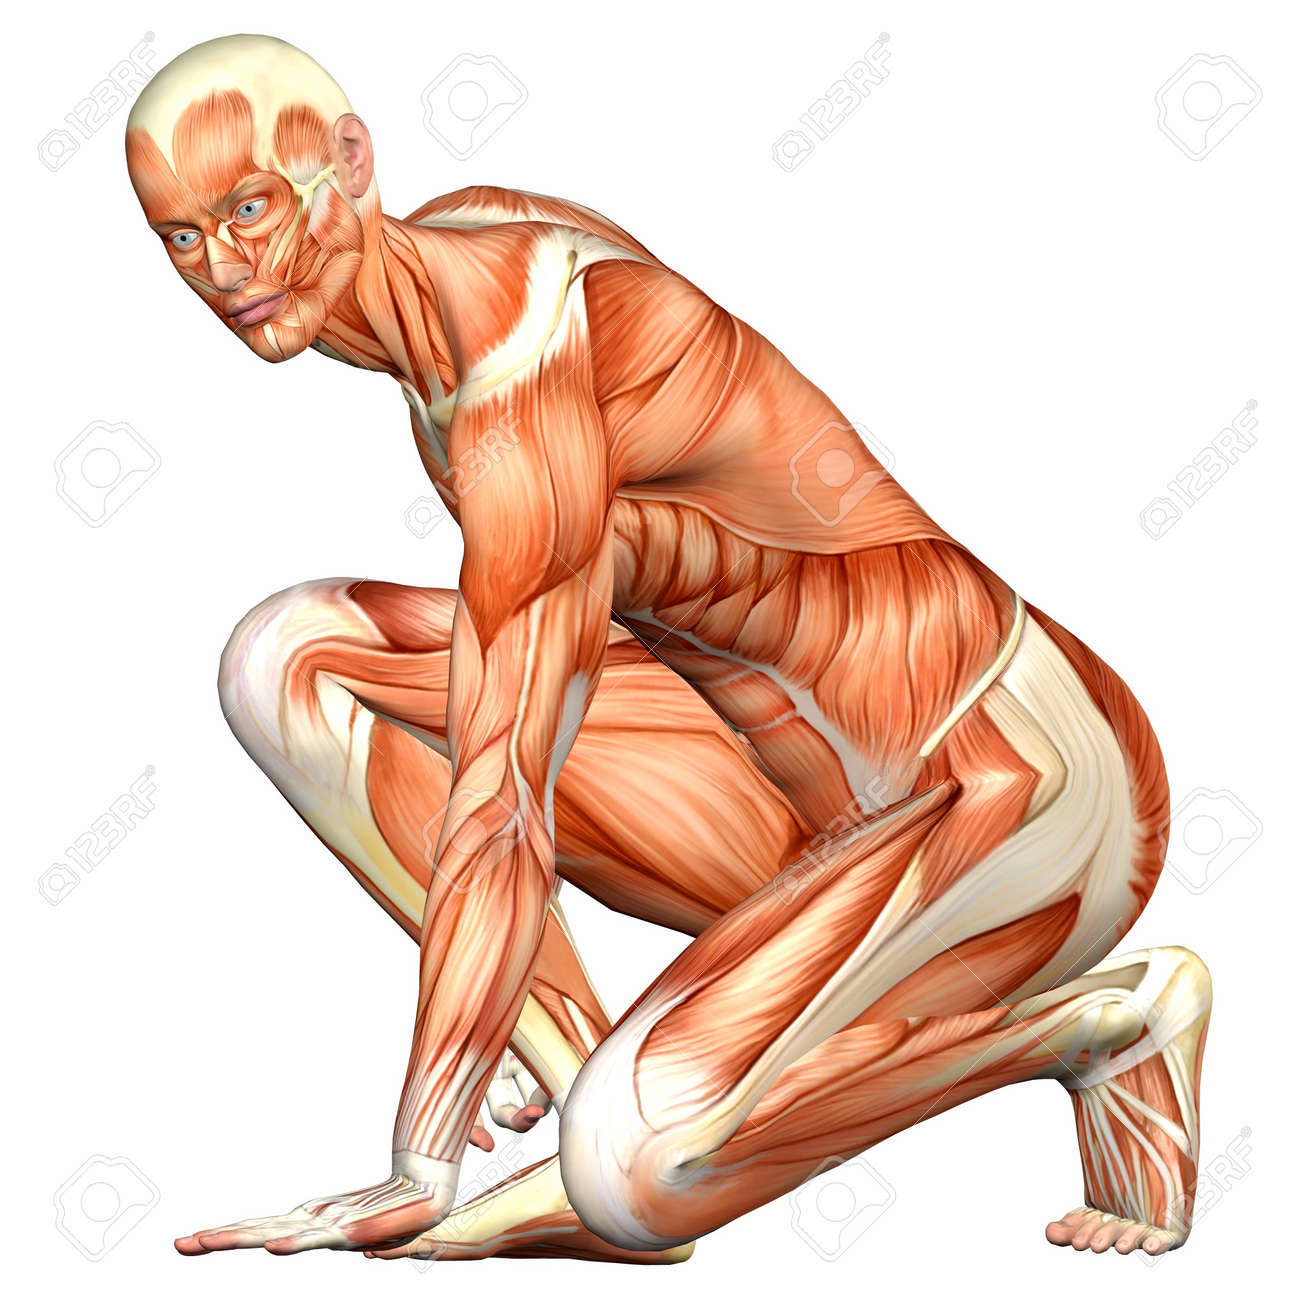 Physiology Stock Photos Royalty Free Physiology Images